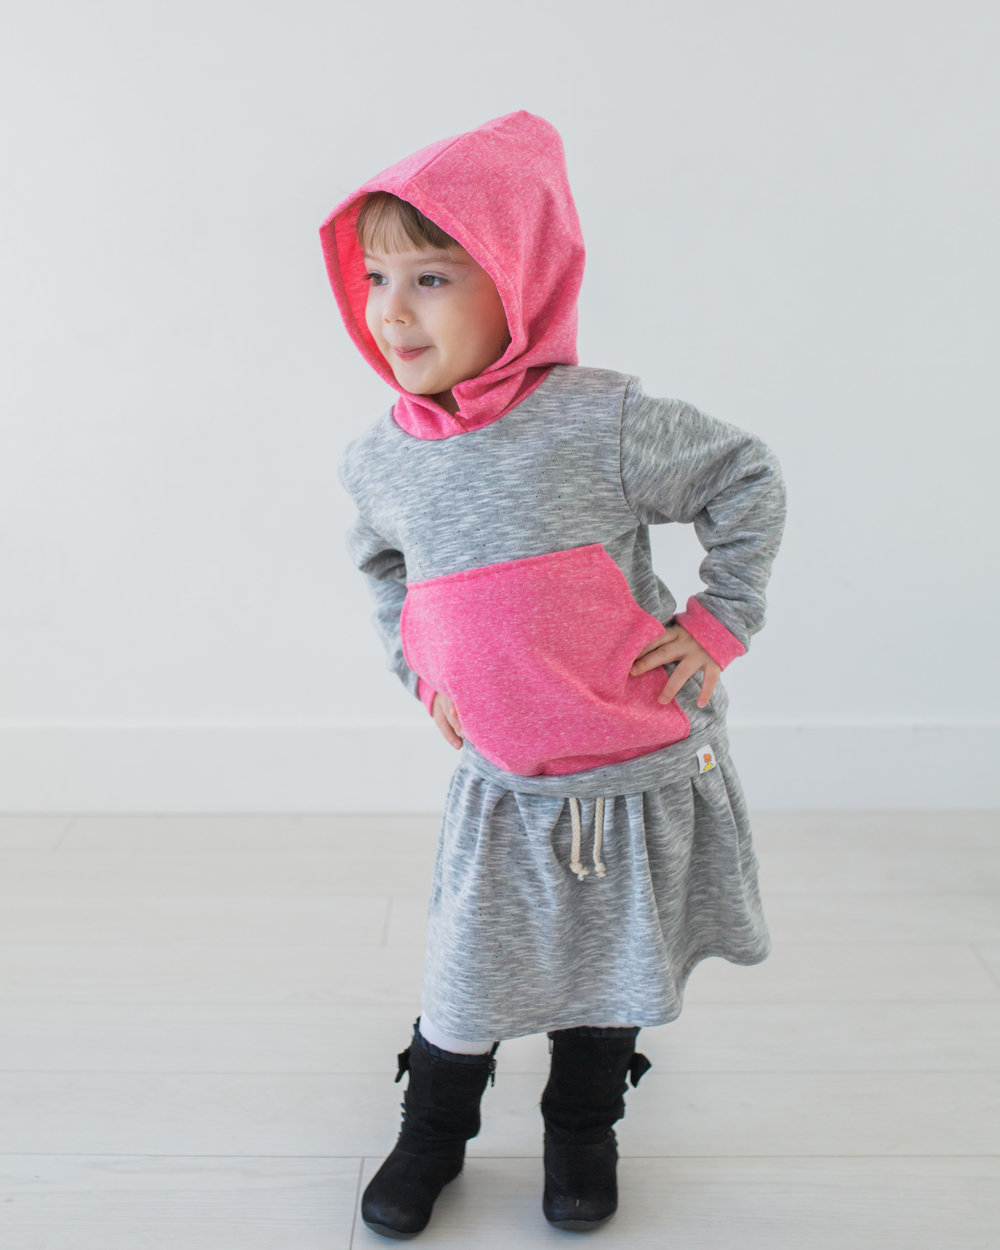 Paradise Kids Clothing-0335.jpg